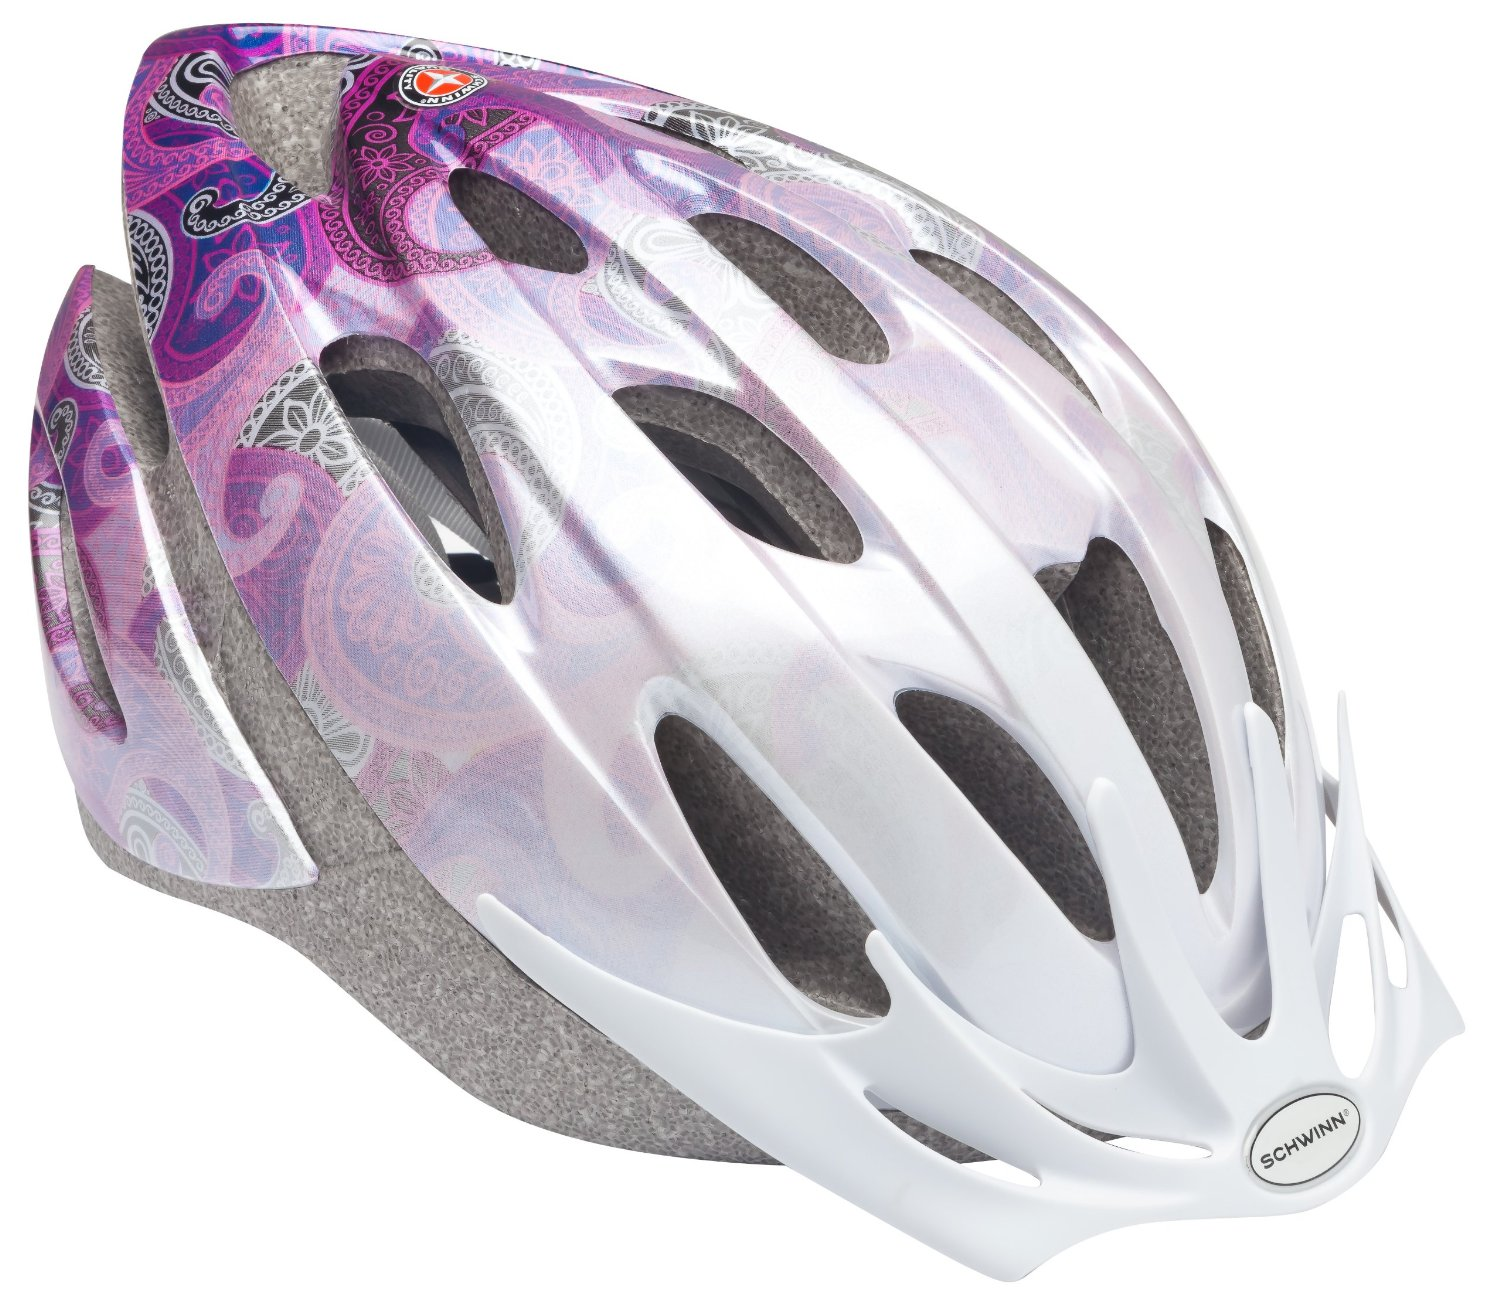 Pink Schwinn Bicycle Helmets